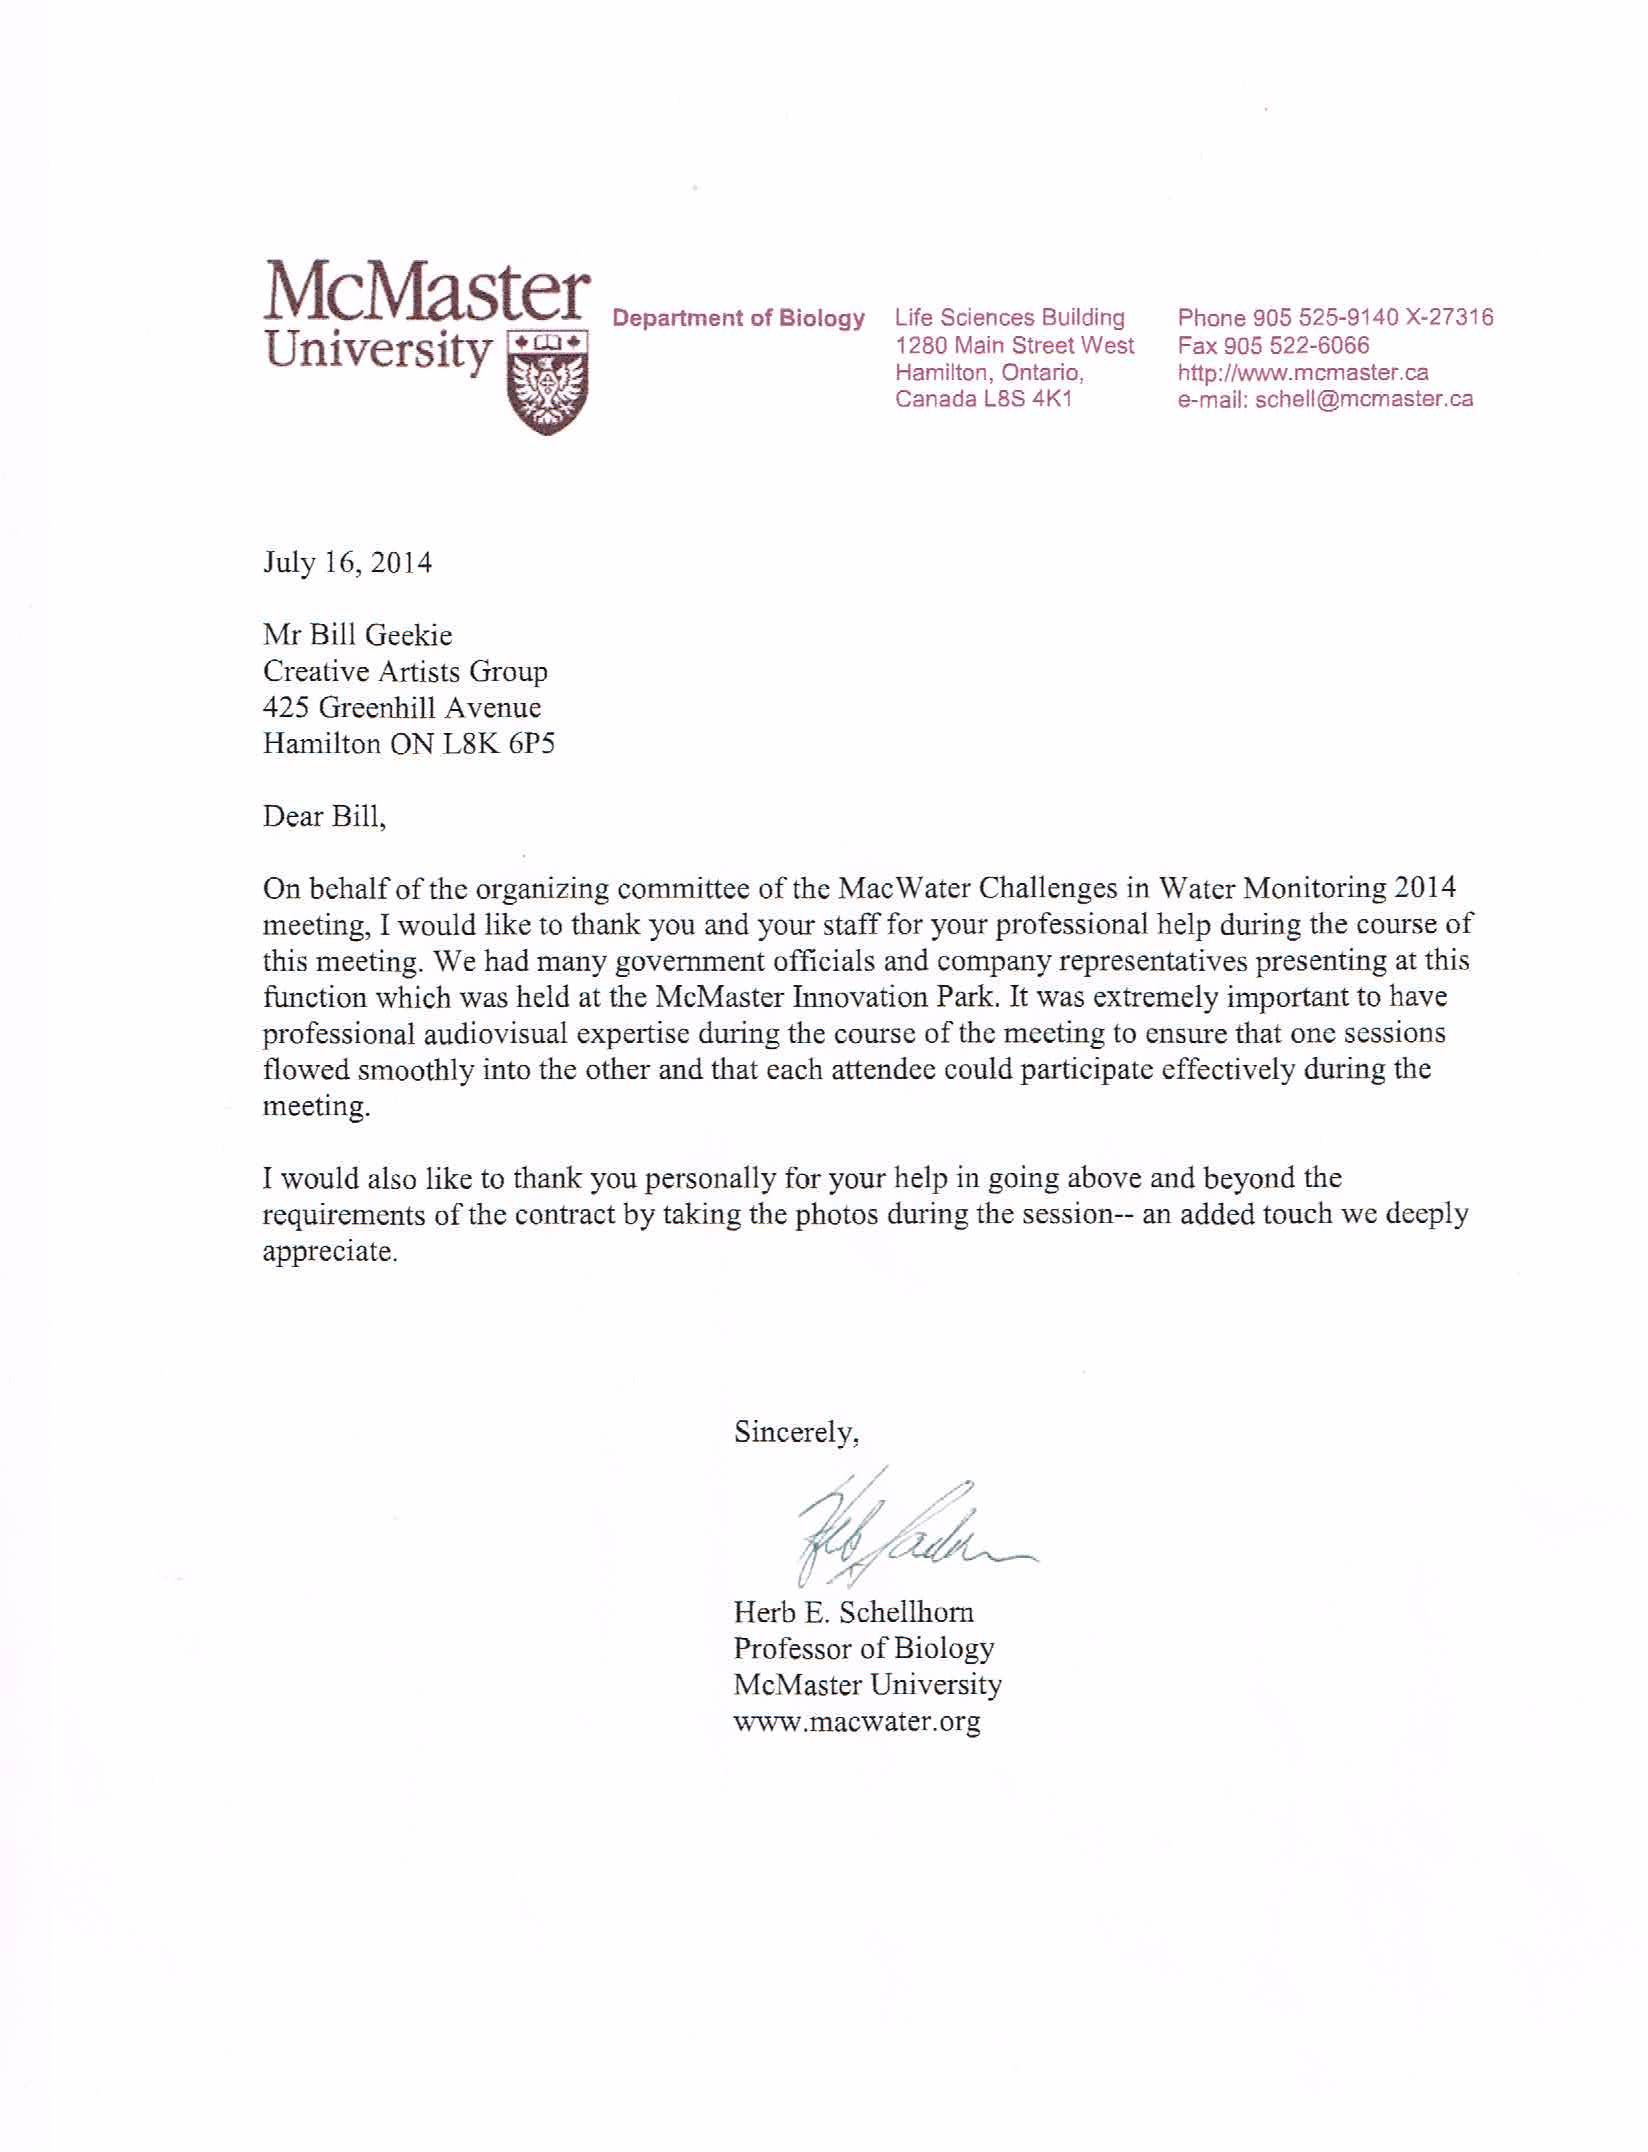 McMaster Department of Biology reference letter